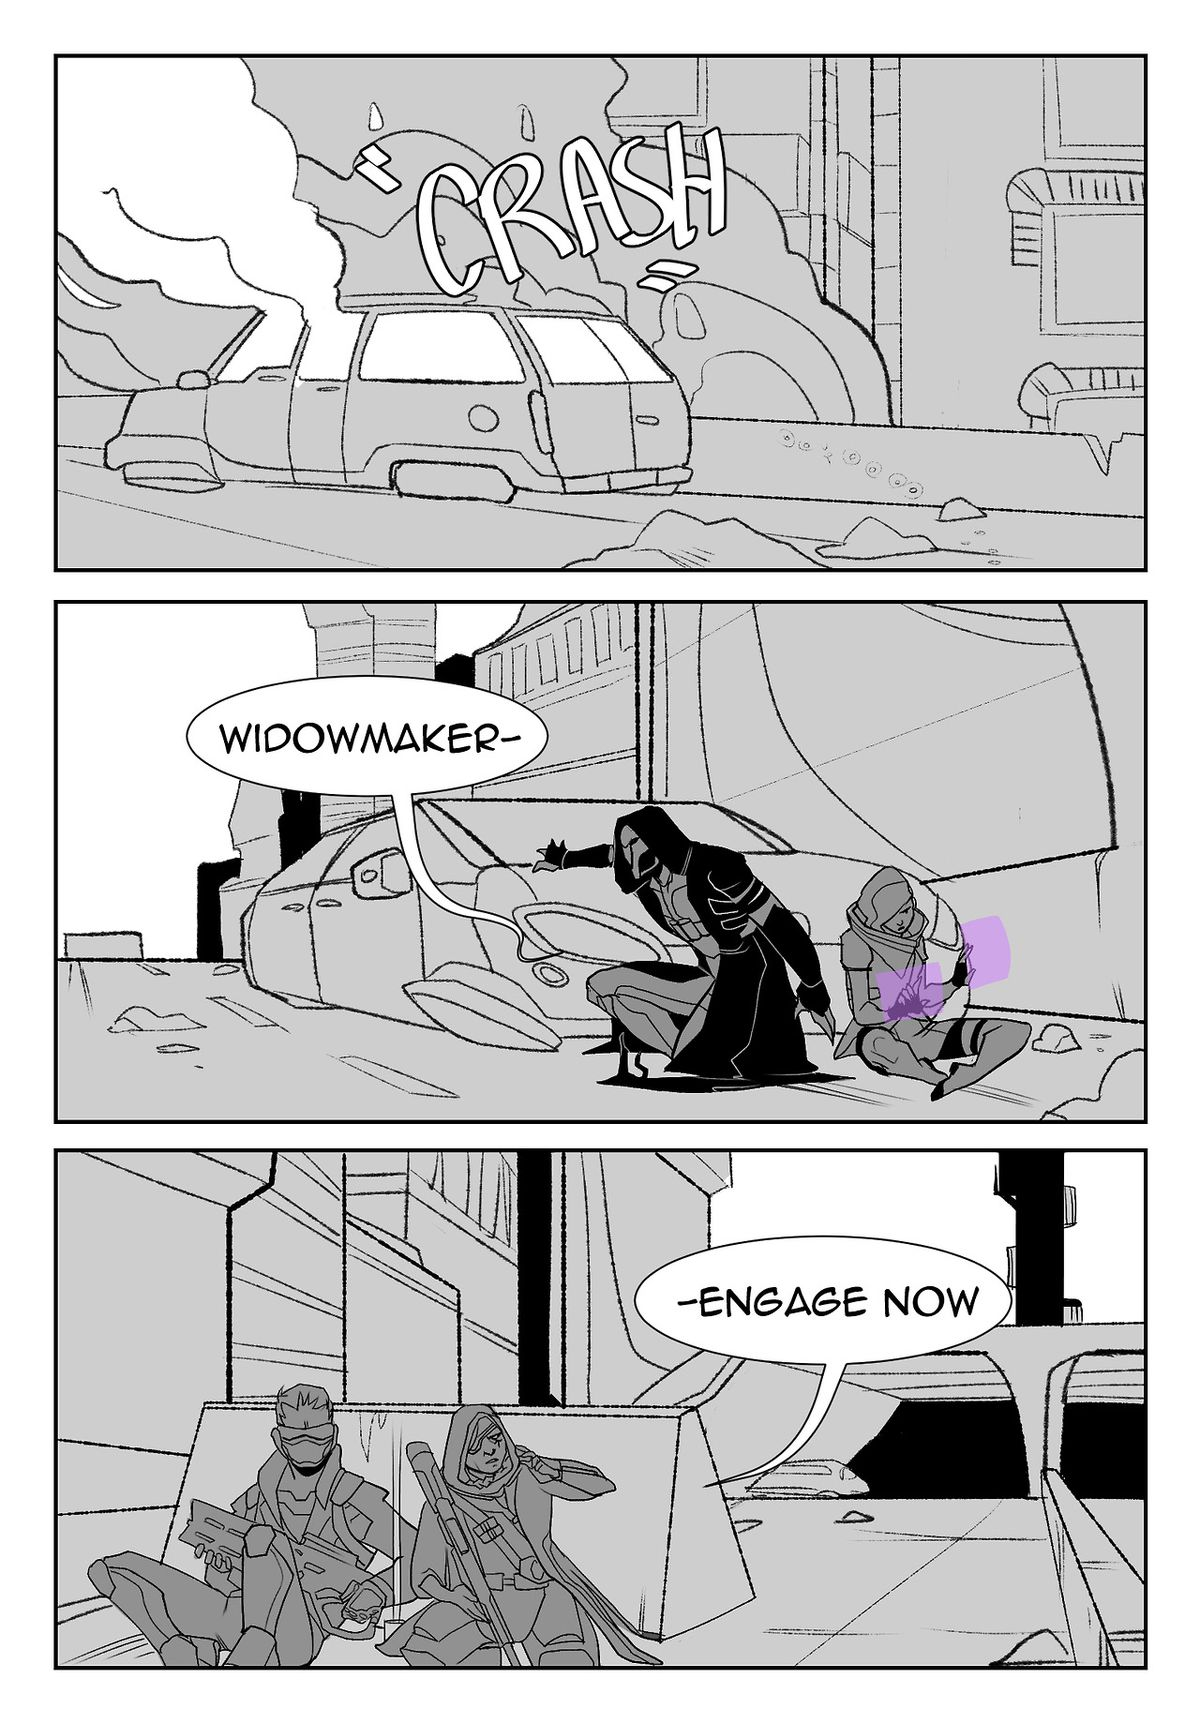 Talon and Overwatch remain mortal enemies in this AU.